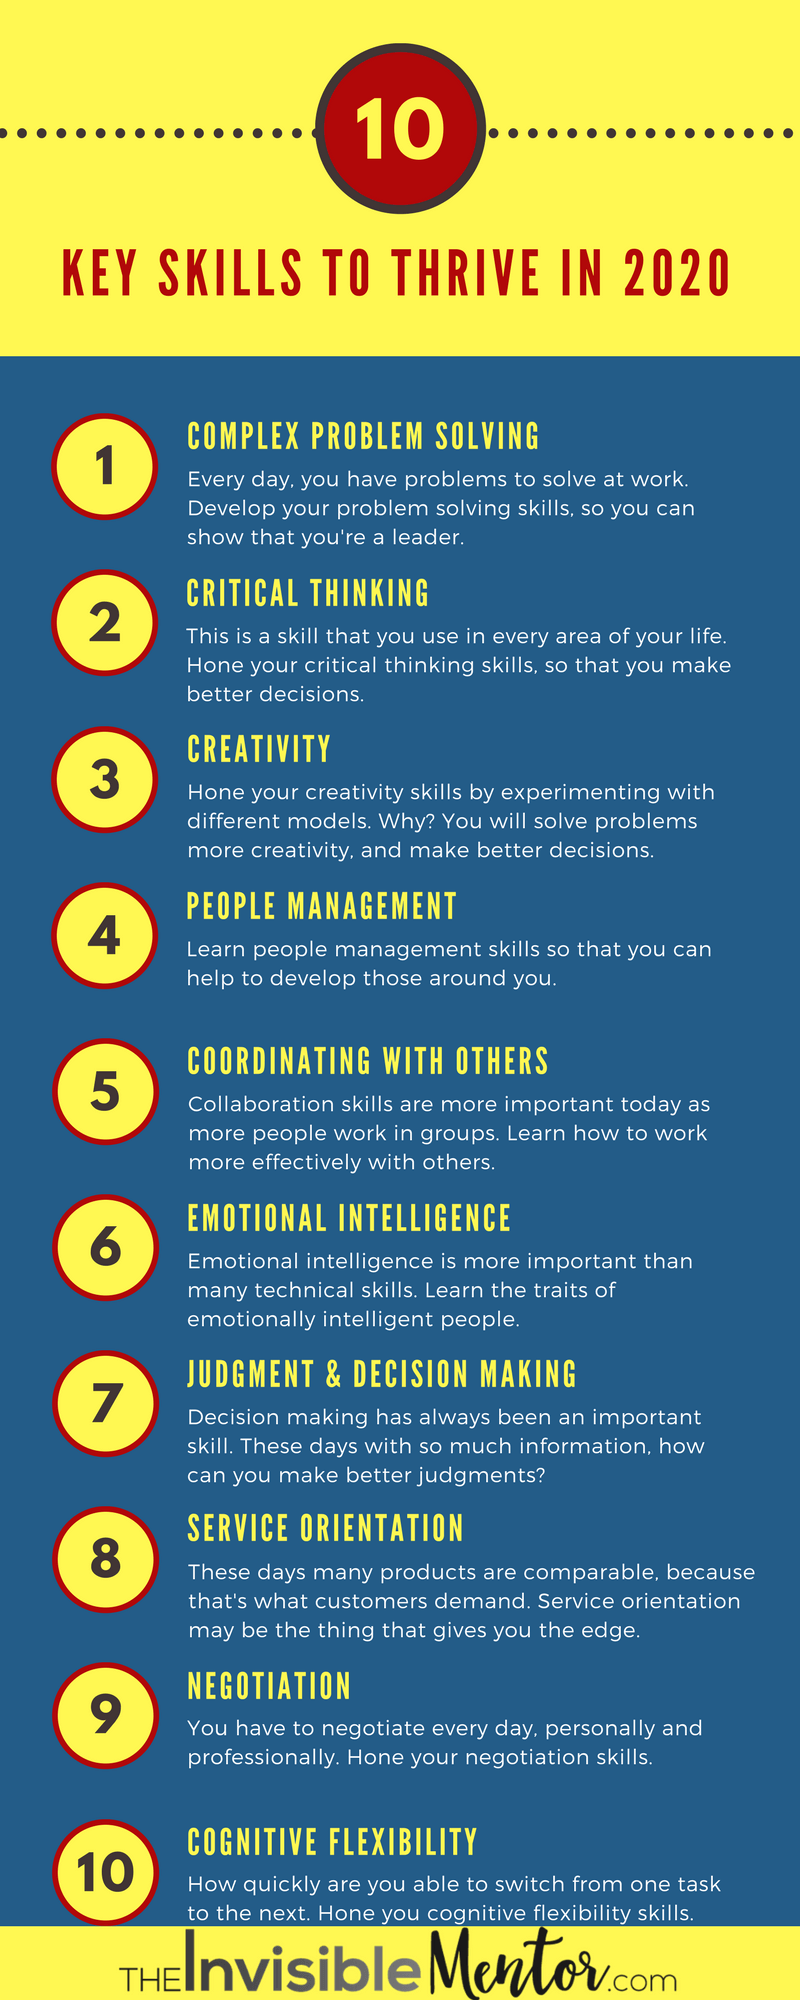 learning 10 key skills for work  getting ready to thrive in 2020